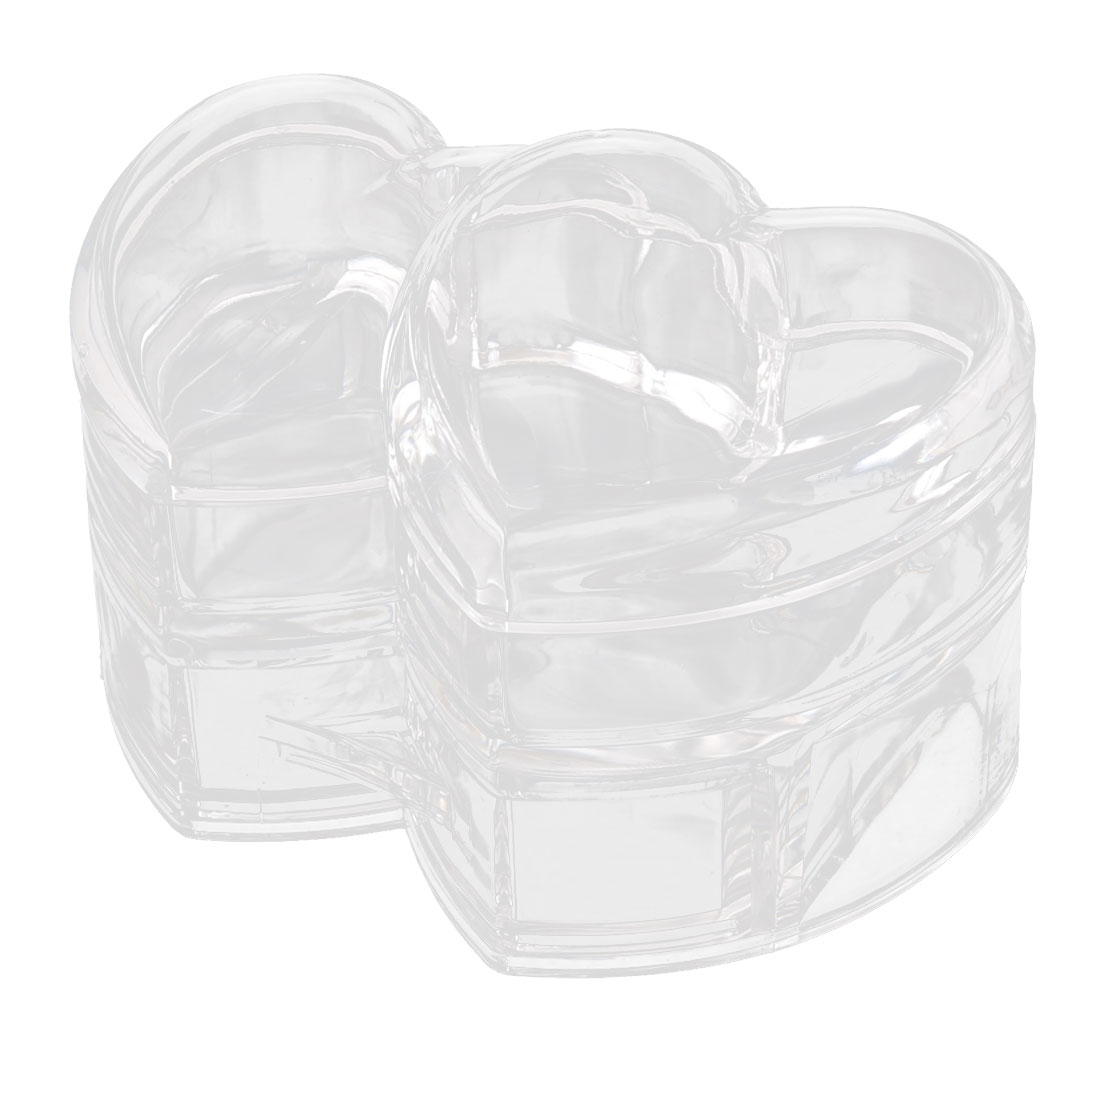 Acrylic Heart Shape Cotton Pads Makeup Drawer Case Jewelry Box Organizer Clear